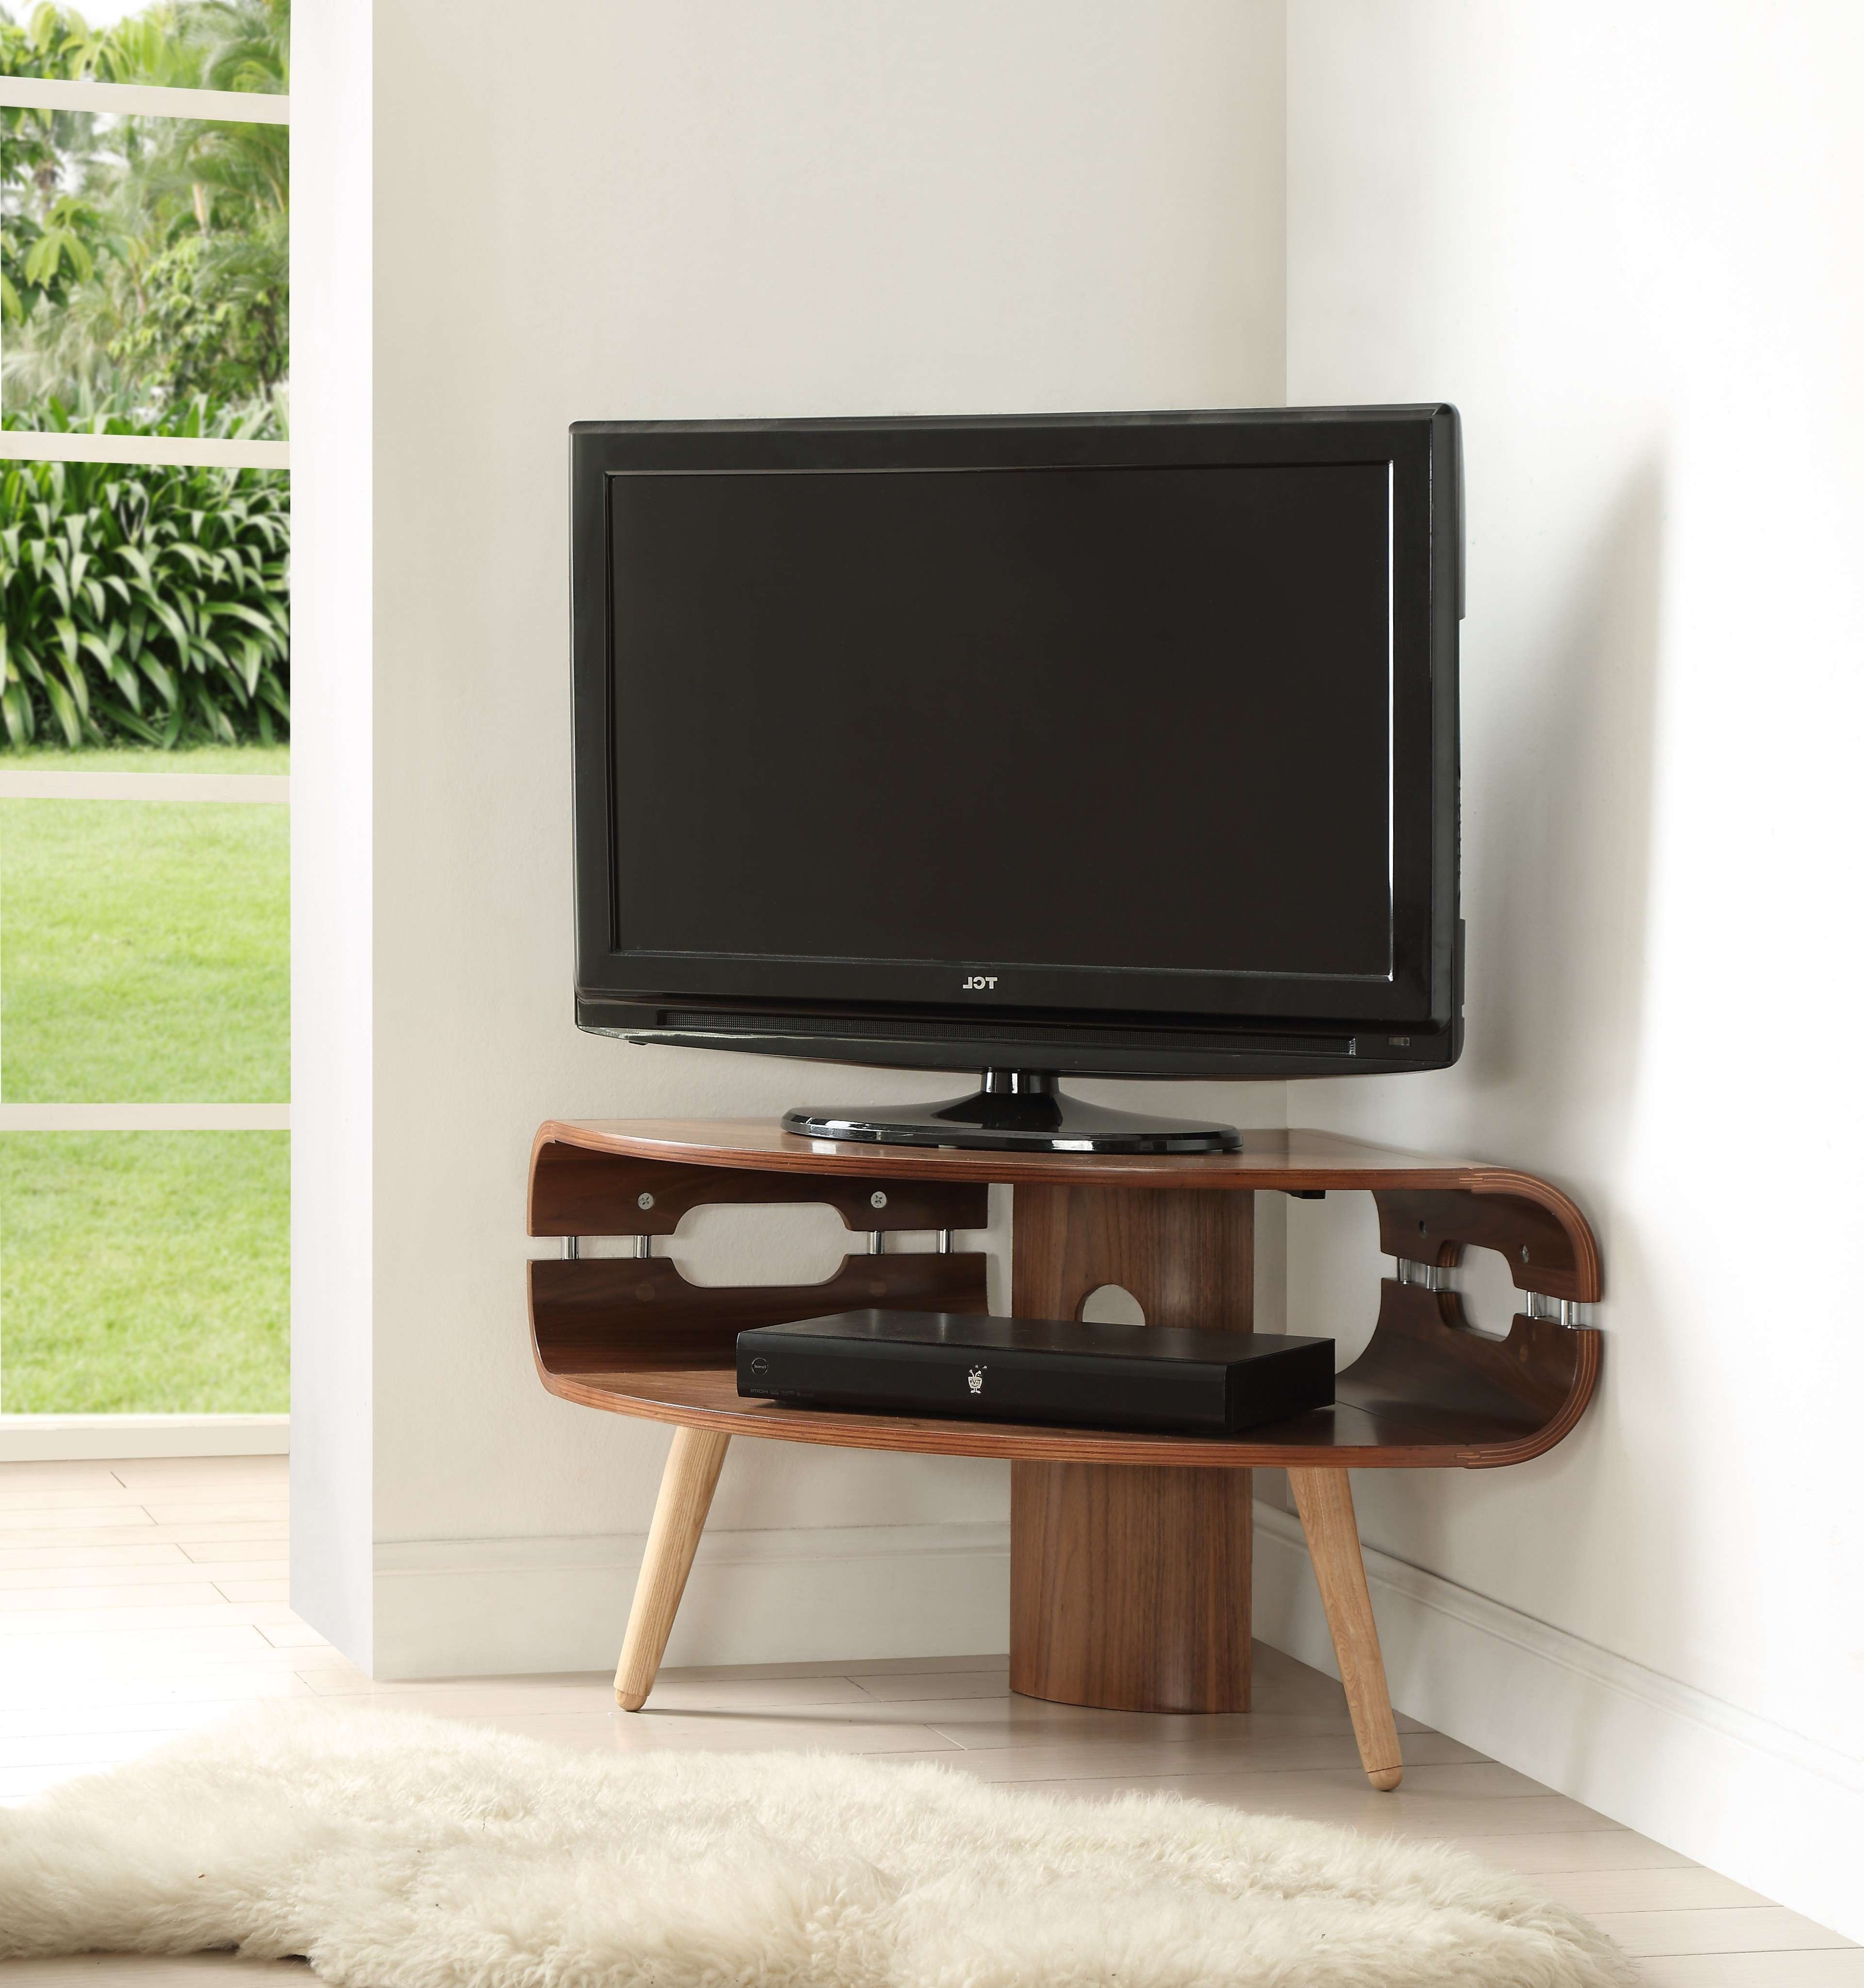 Jf701 Corner Tv Stand – Cooks For Retro Corner Tv Stands (View 5 of 15)